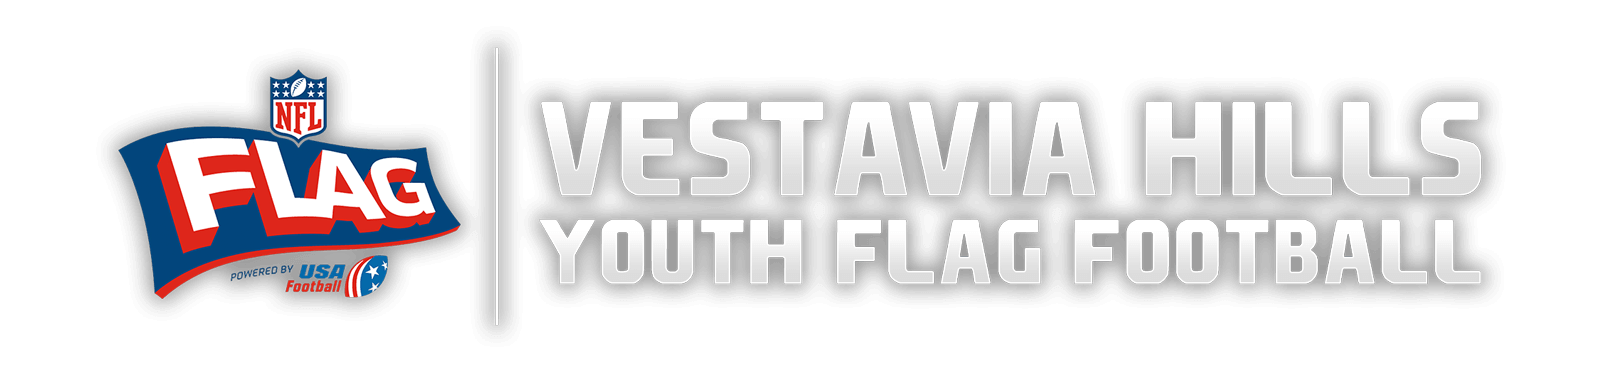 Vestavia Hills Youth Flag Football, Football, Goal, Field